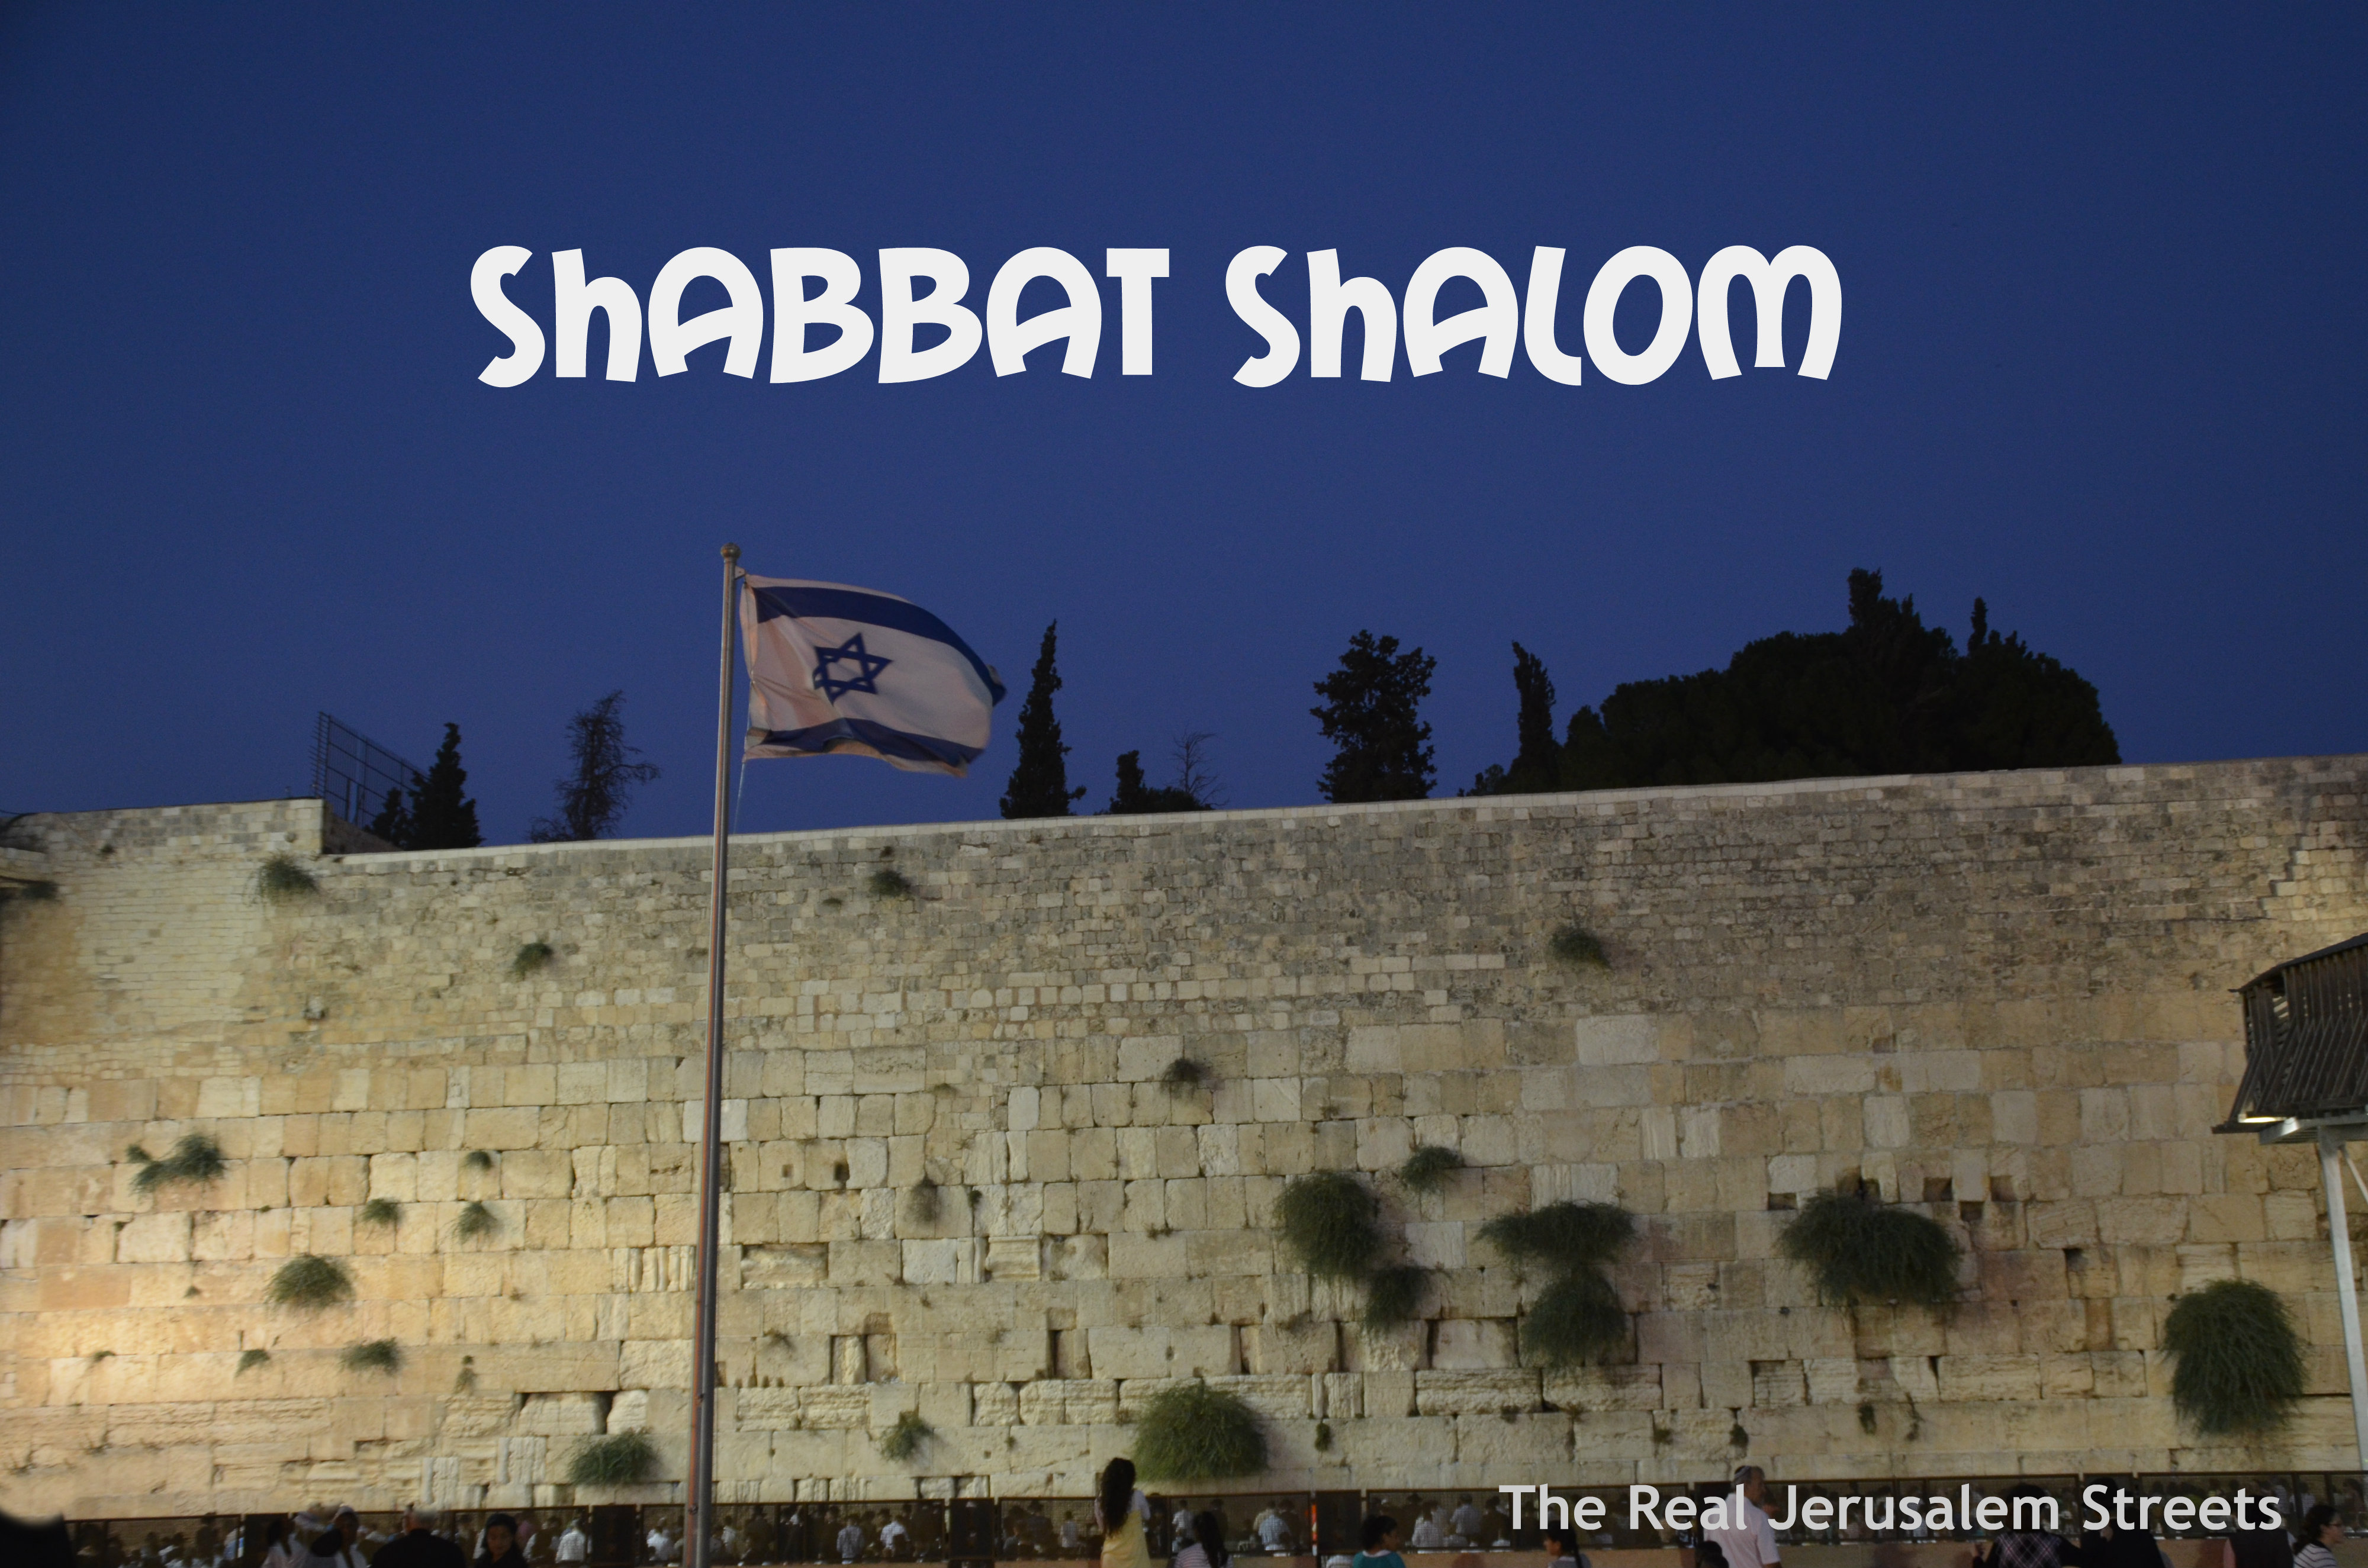 shabbat shalom wallpaper